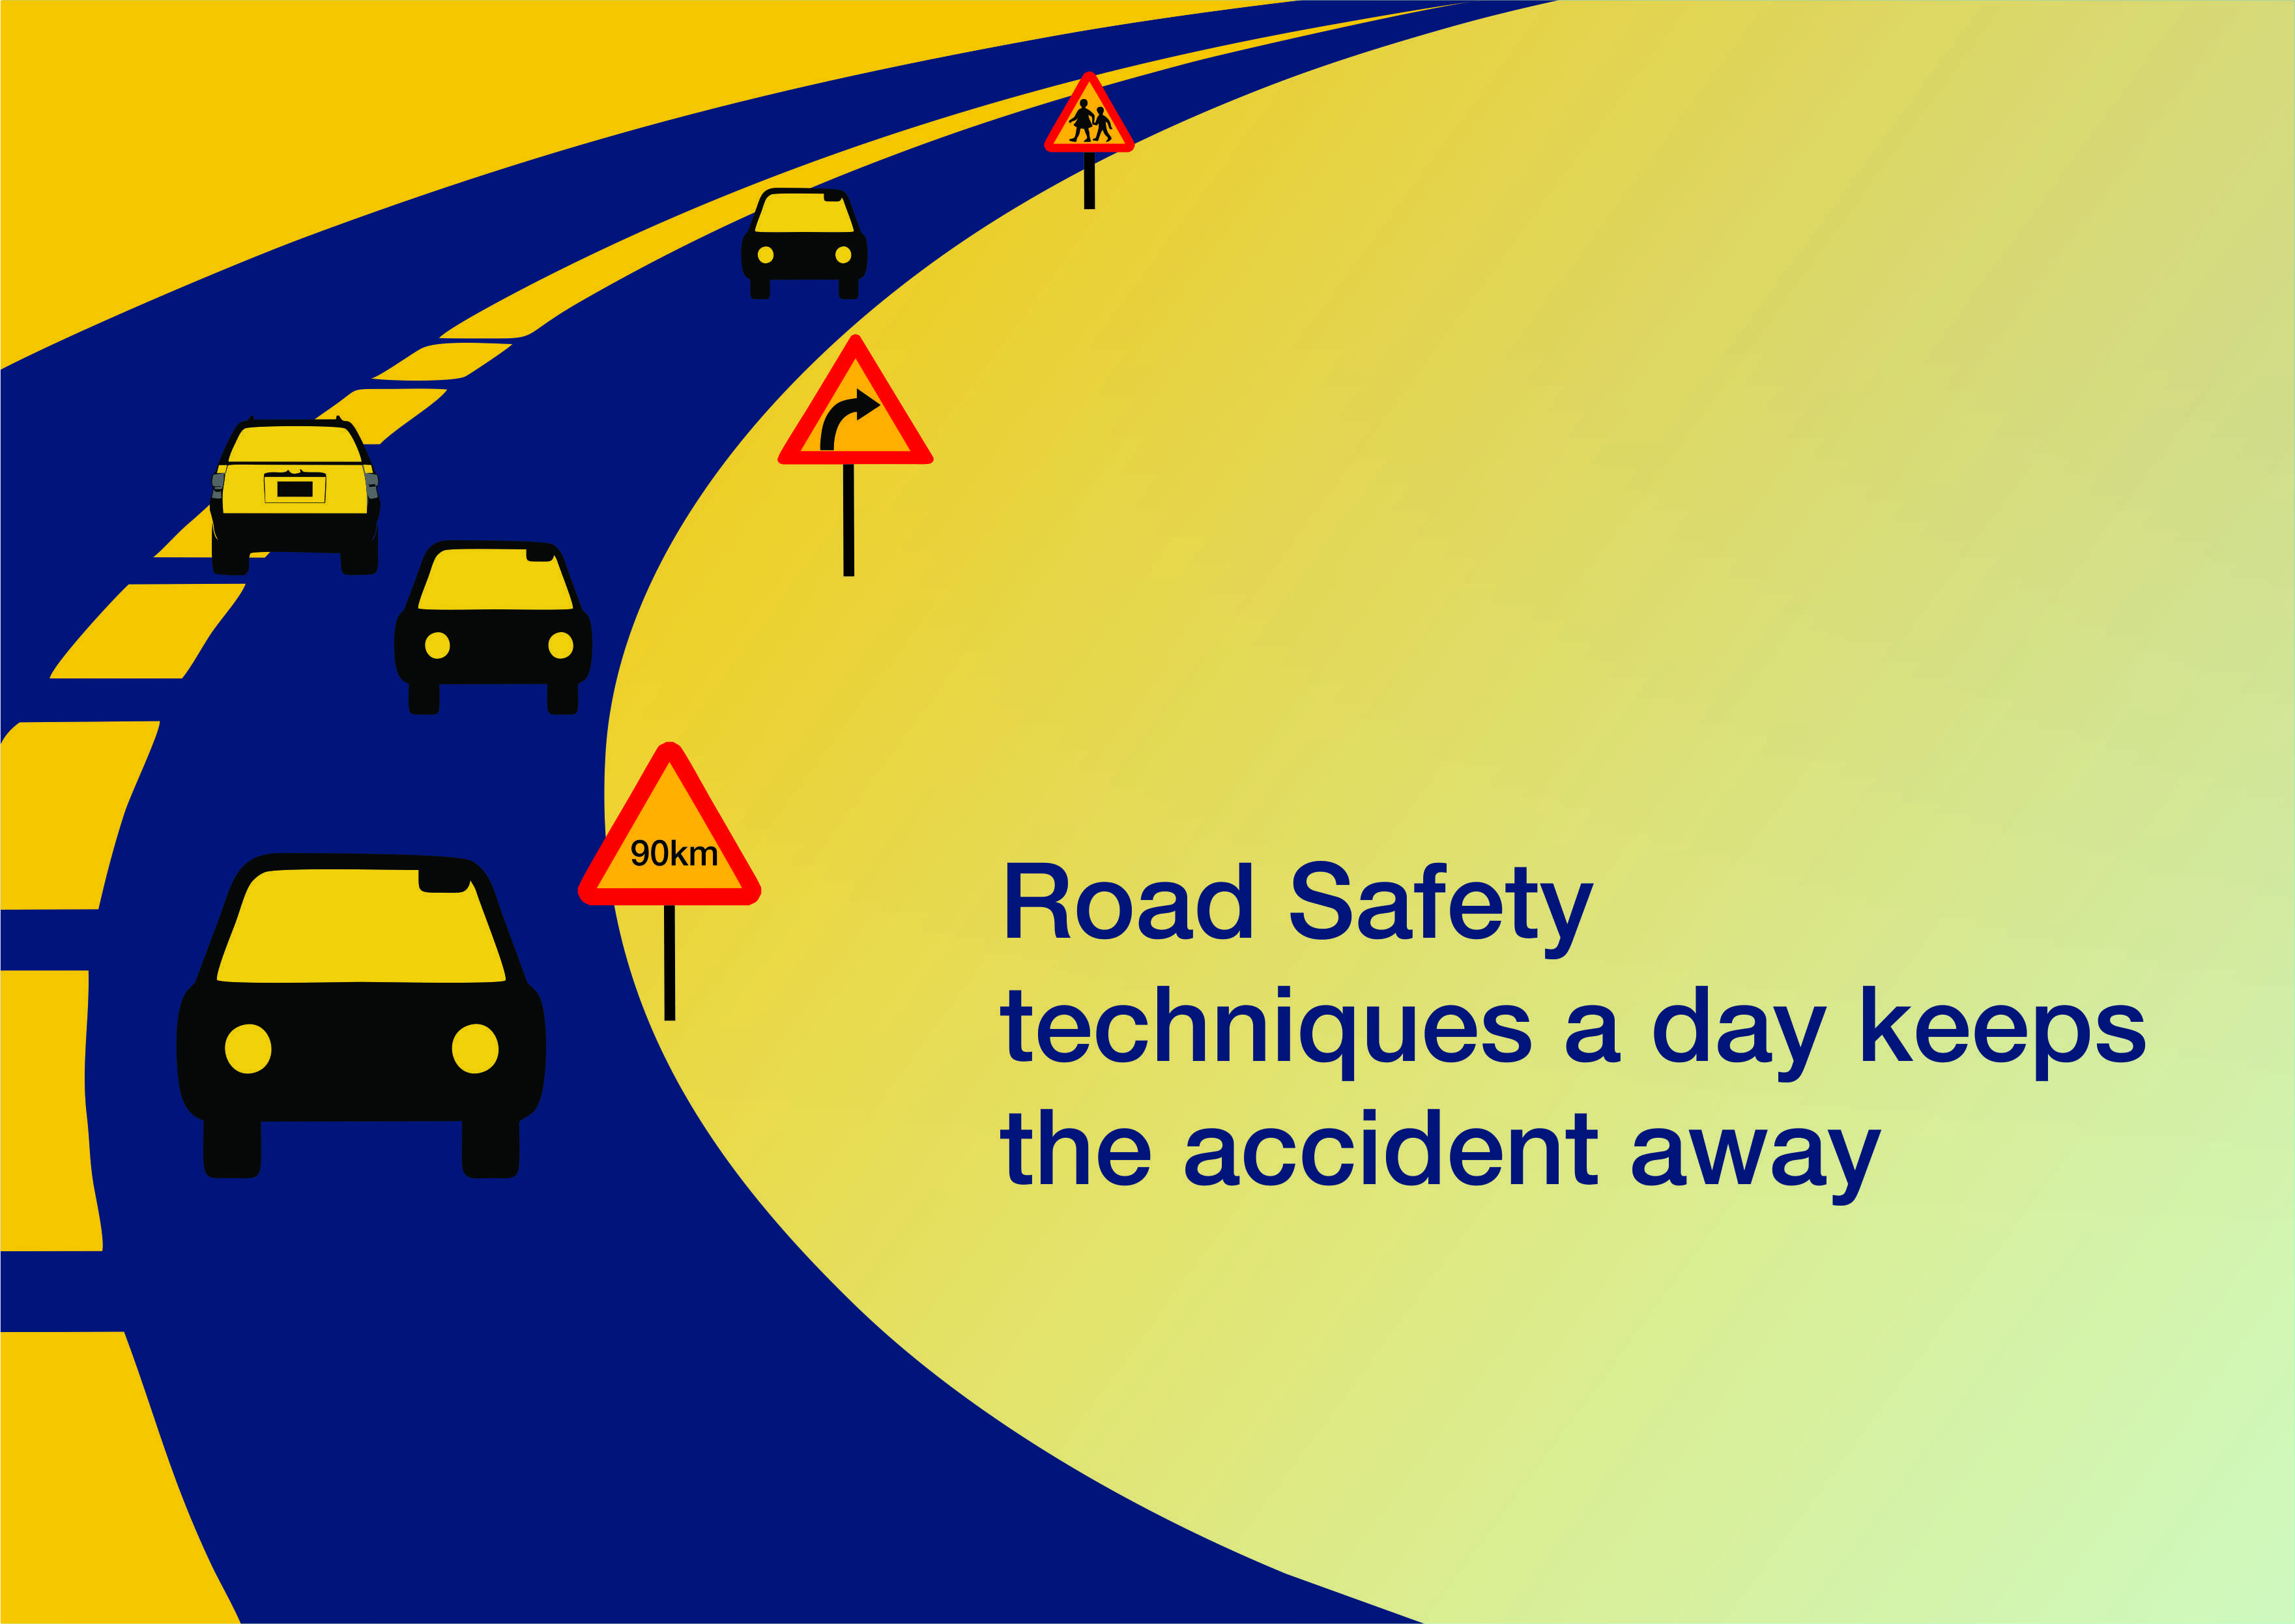 Road Safety Techniques a Day keeps the Accidents away - P-arasteh.org